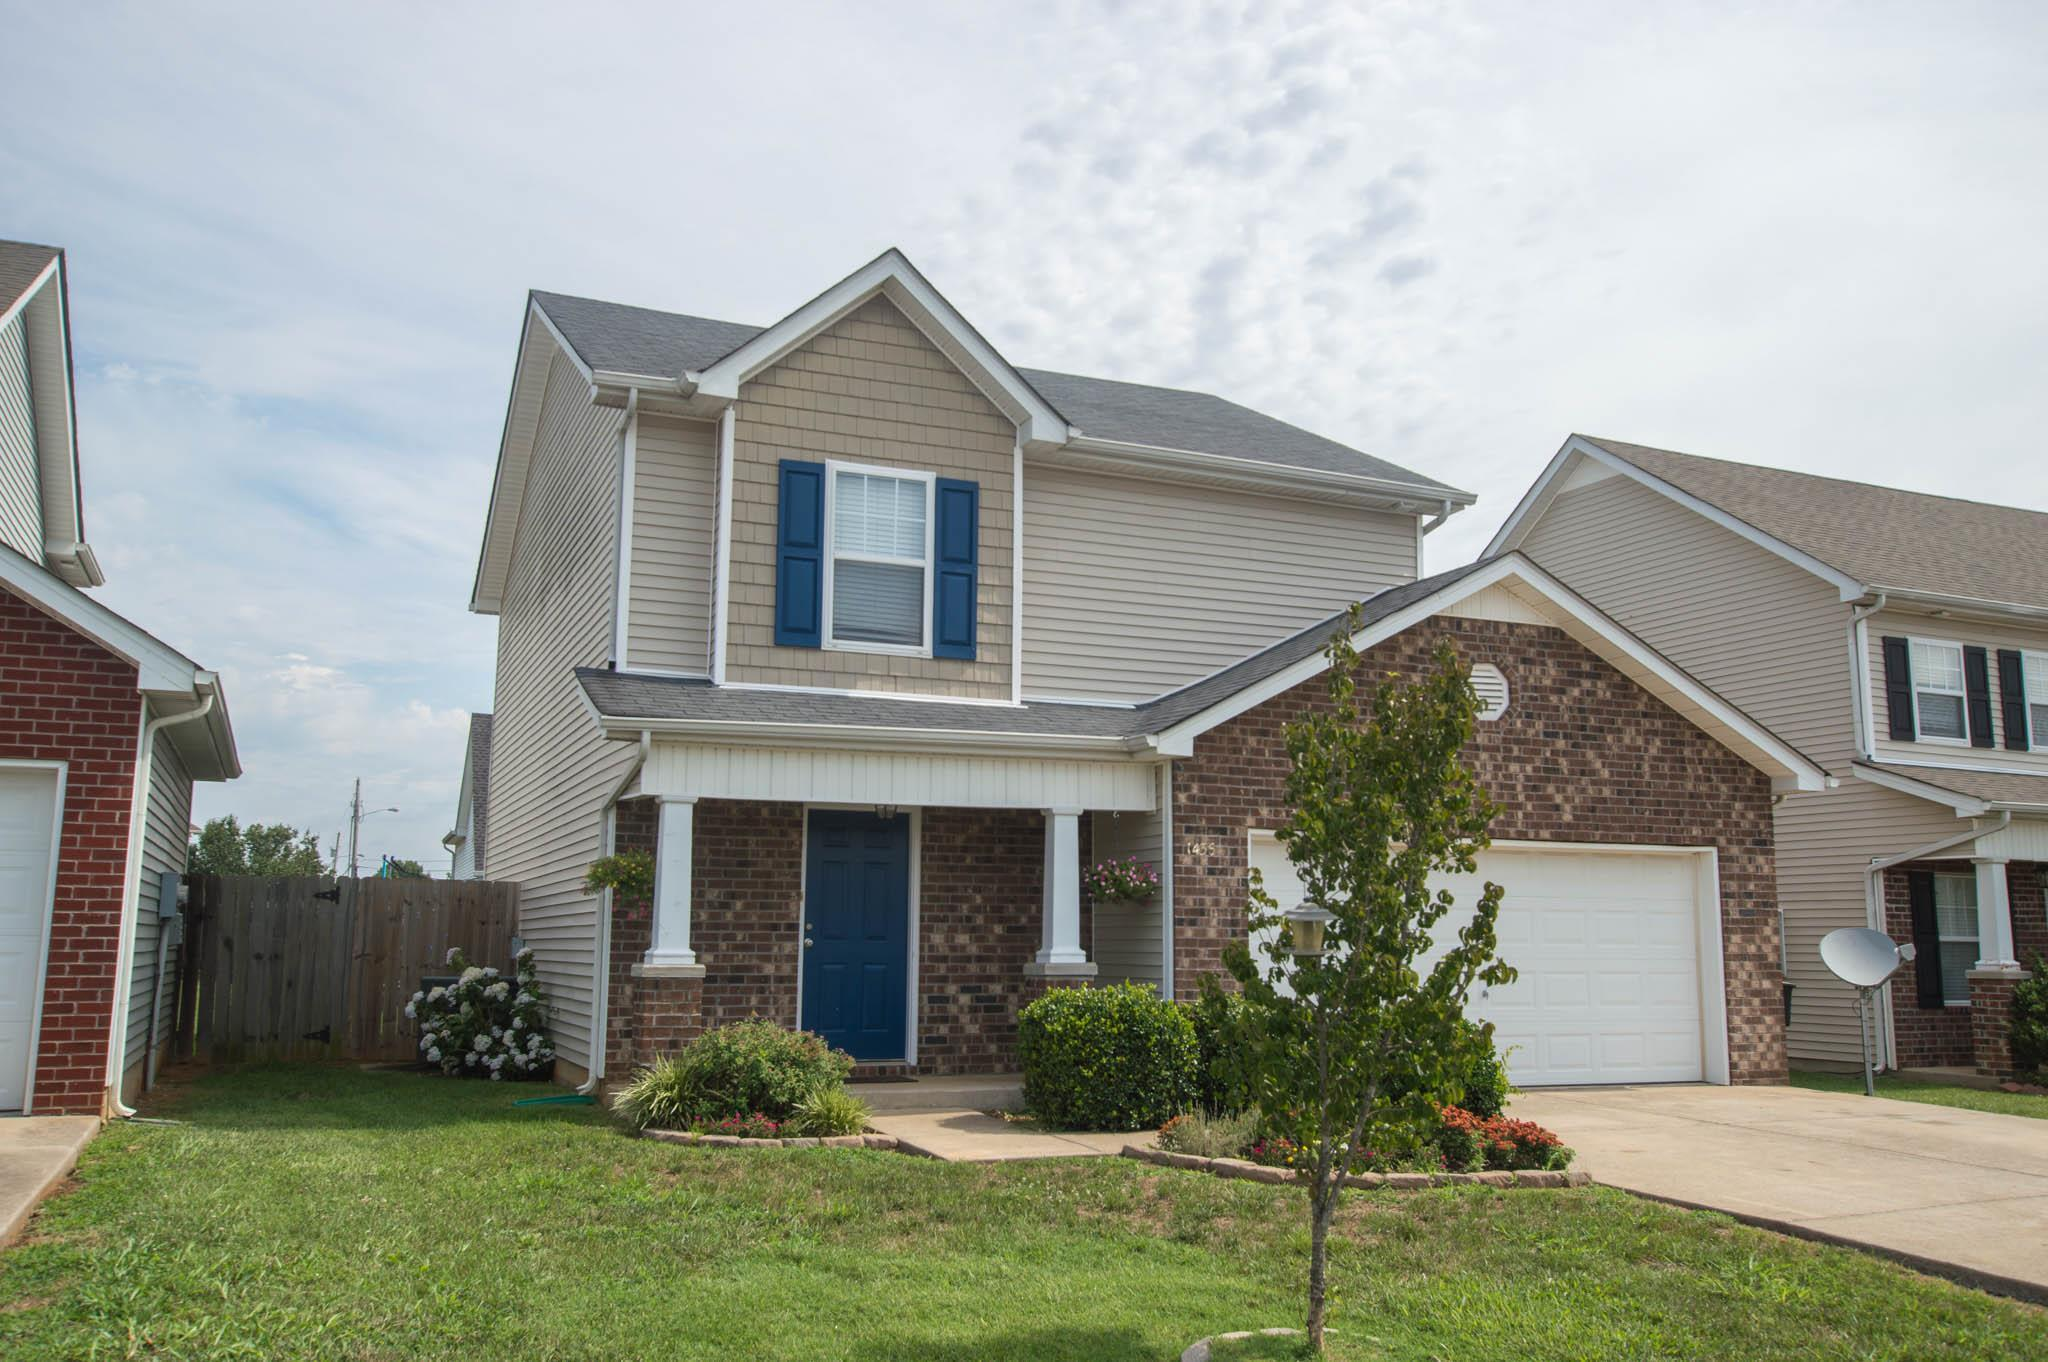 Tennessee rutherford county christiana - Murfreesboro Tn Single Family Home Sold 165 000